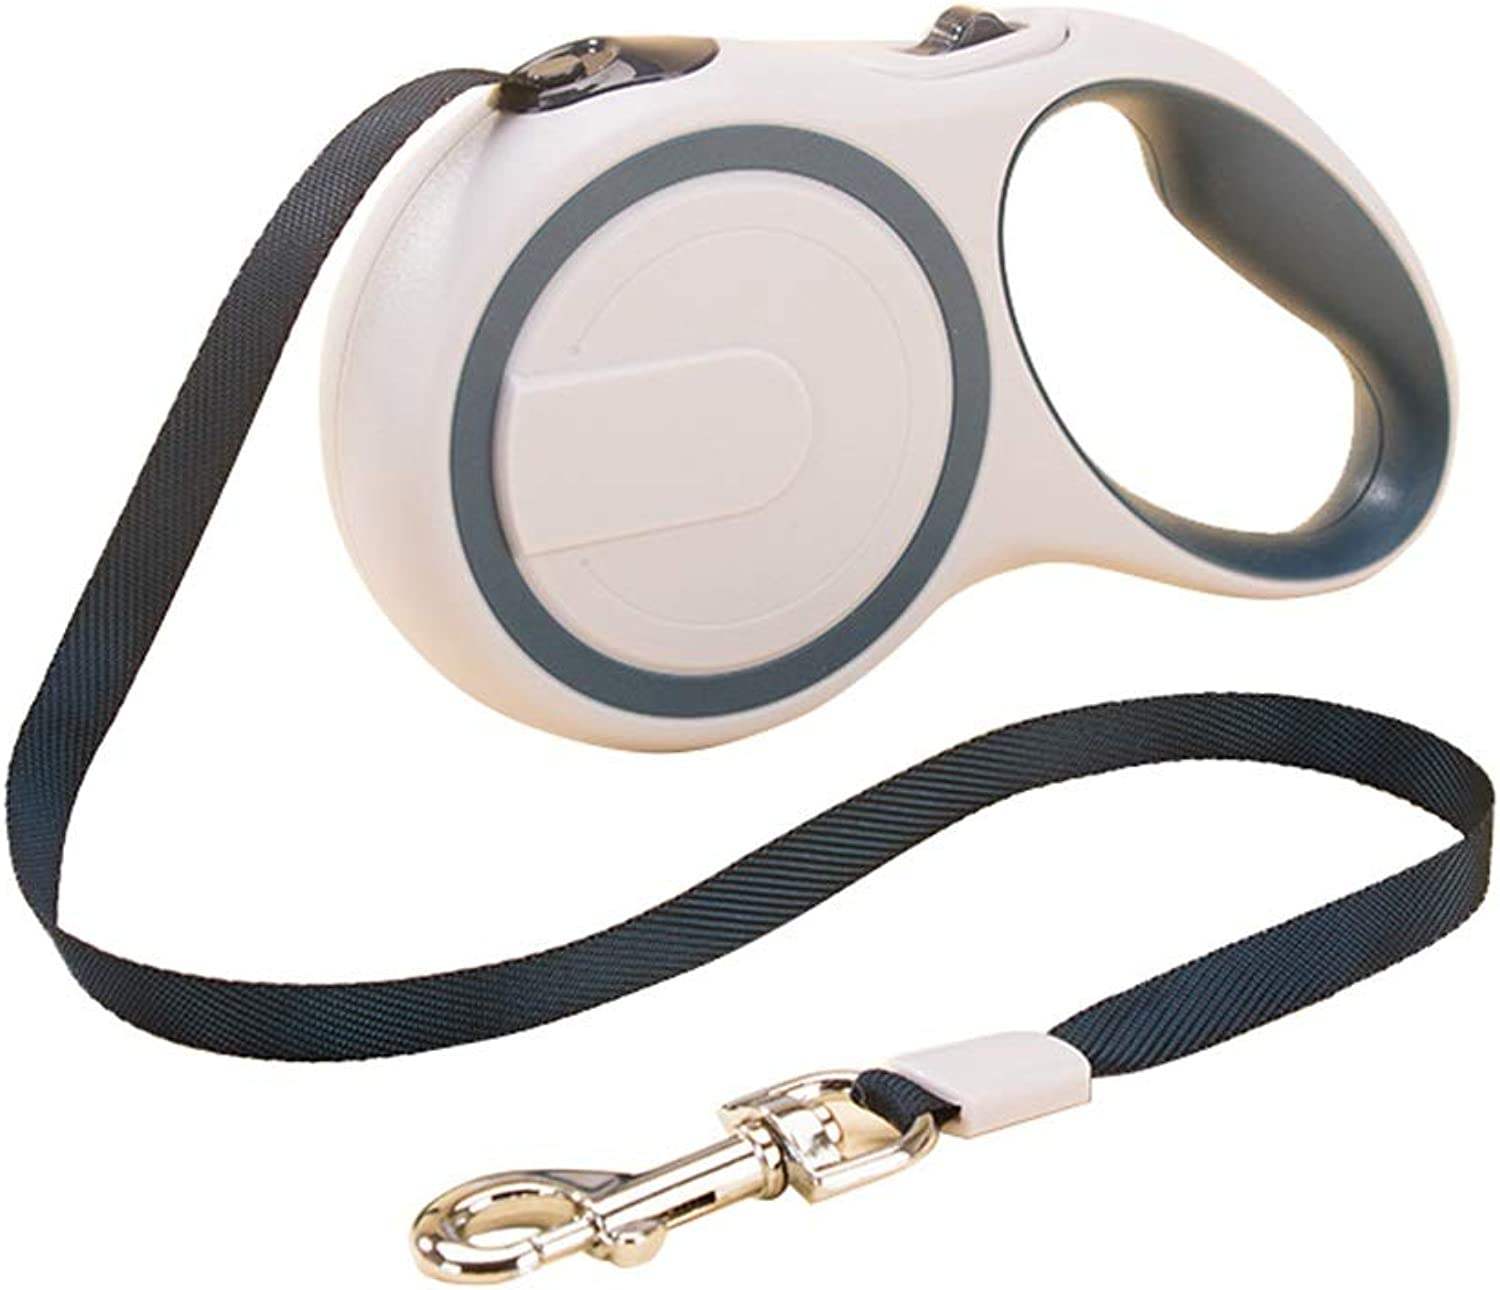 Retractable Dog Lead Extending Leash,Dog Lead Extendable to 3m  5m,for Small & Medium Dogs,for Pet Training Walking